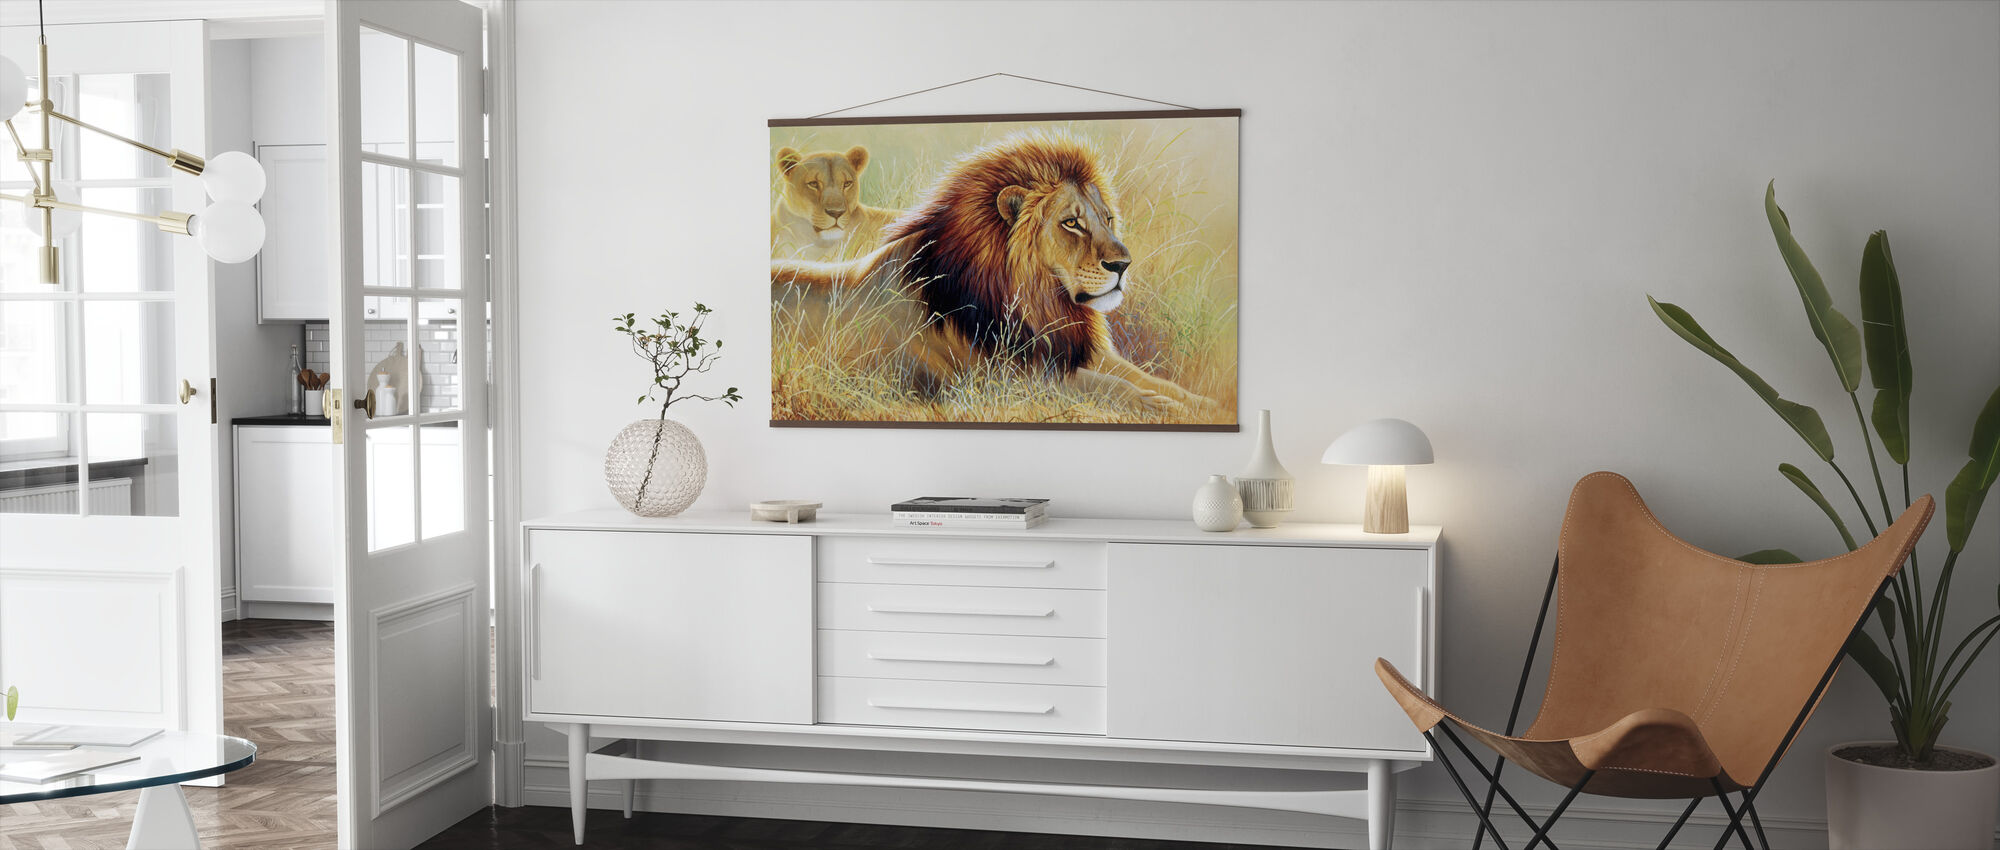 Lion and Lioness - Poster - Living Room